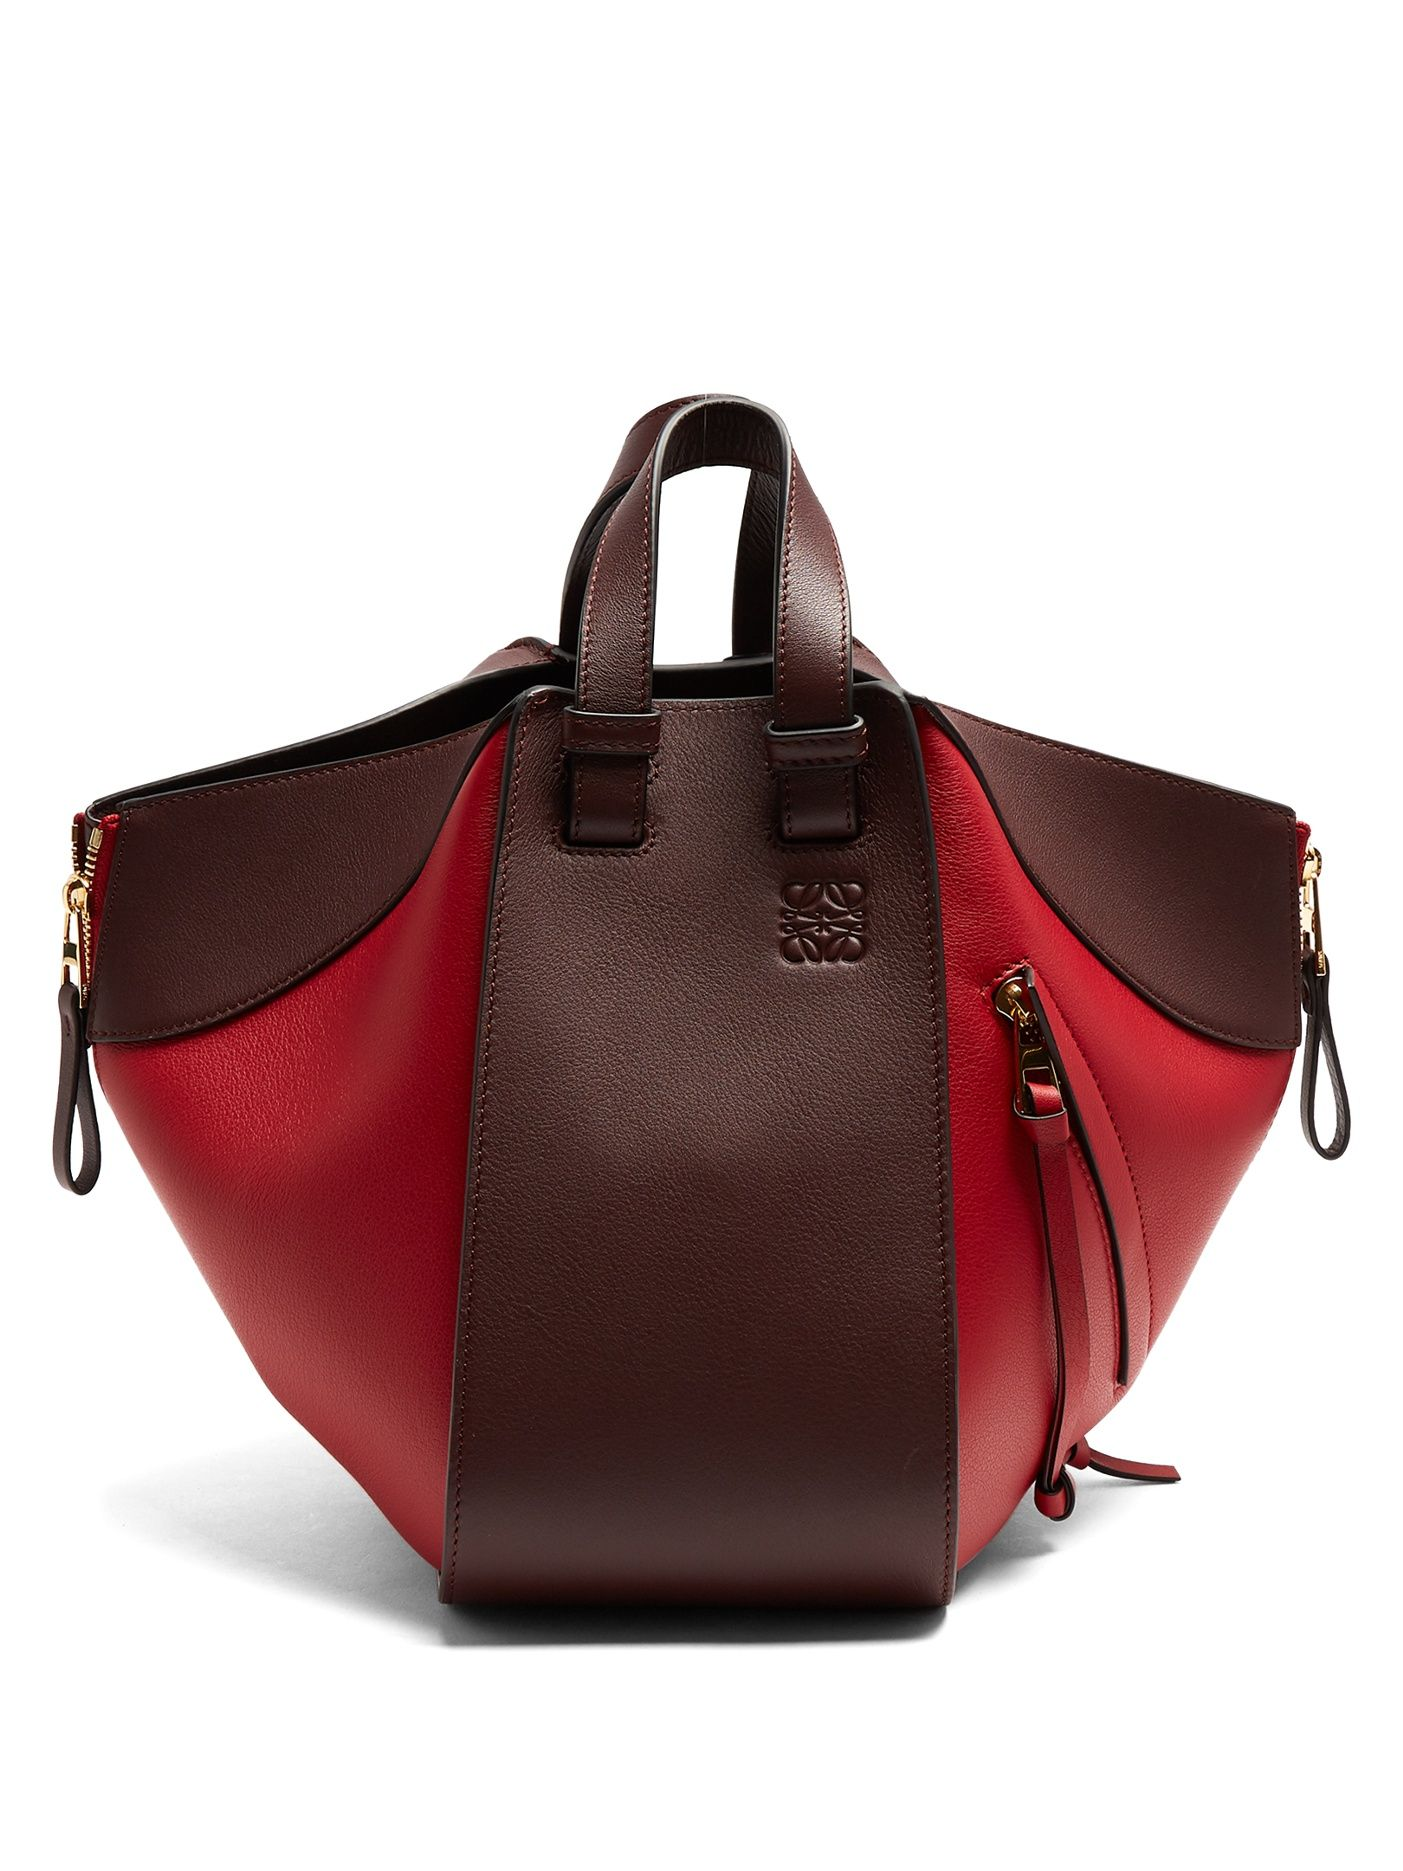 Click here to buy loewe hammock small contrastpanel leather tote at